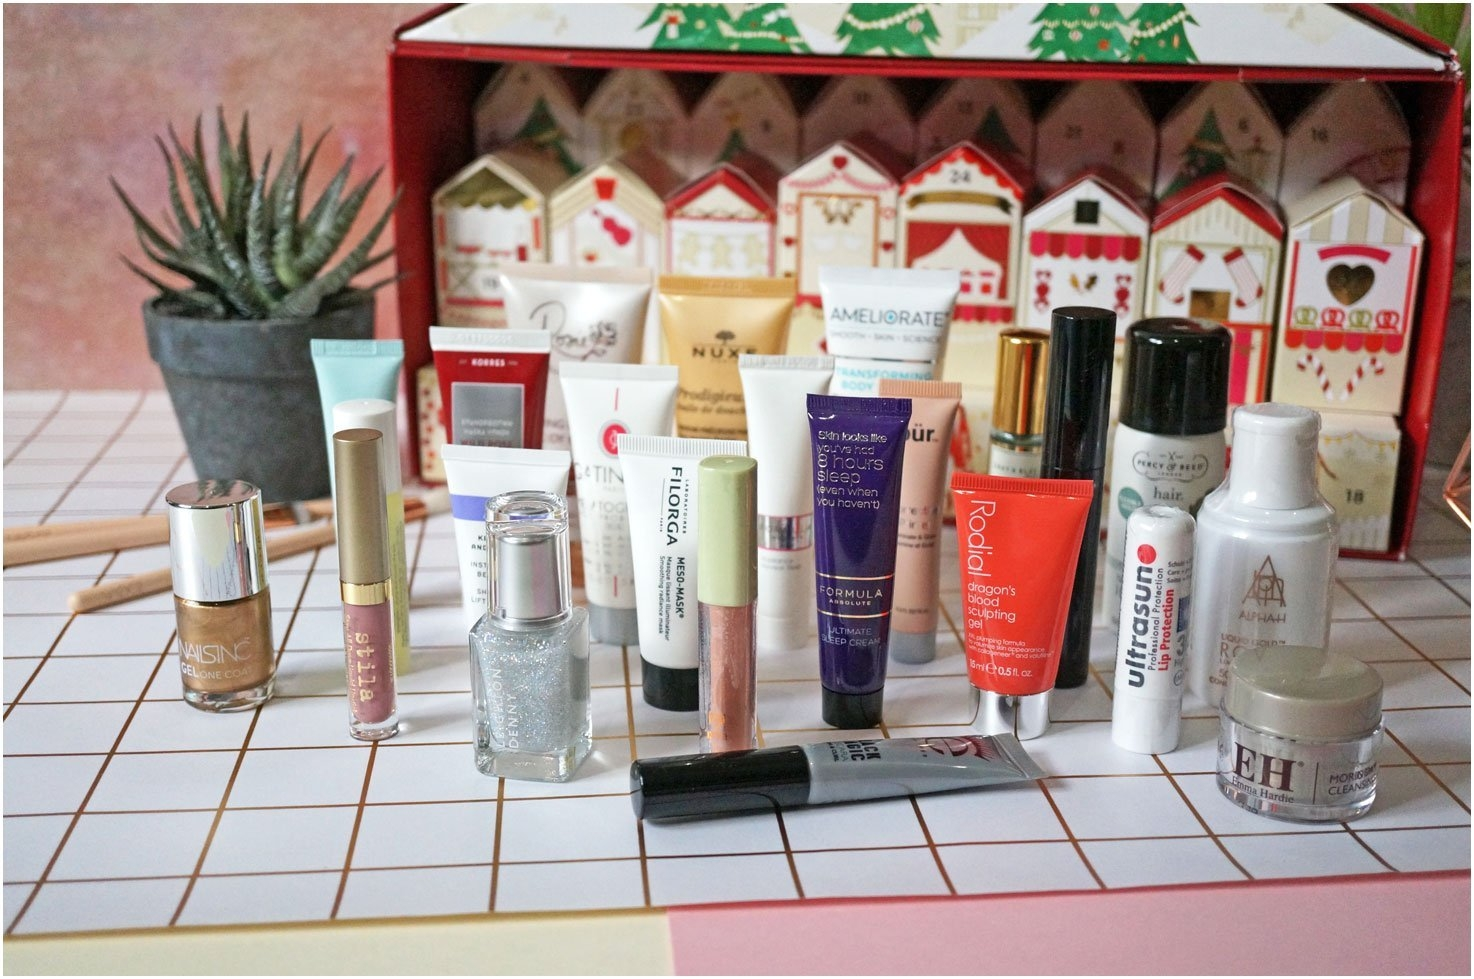 M And S Advent Calendar 2017 To Download Or Print | Americanwomanmag M&s Beauty Advent Calendar 2019